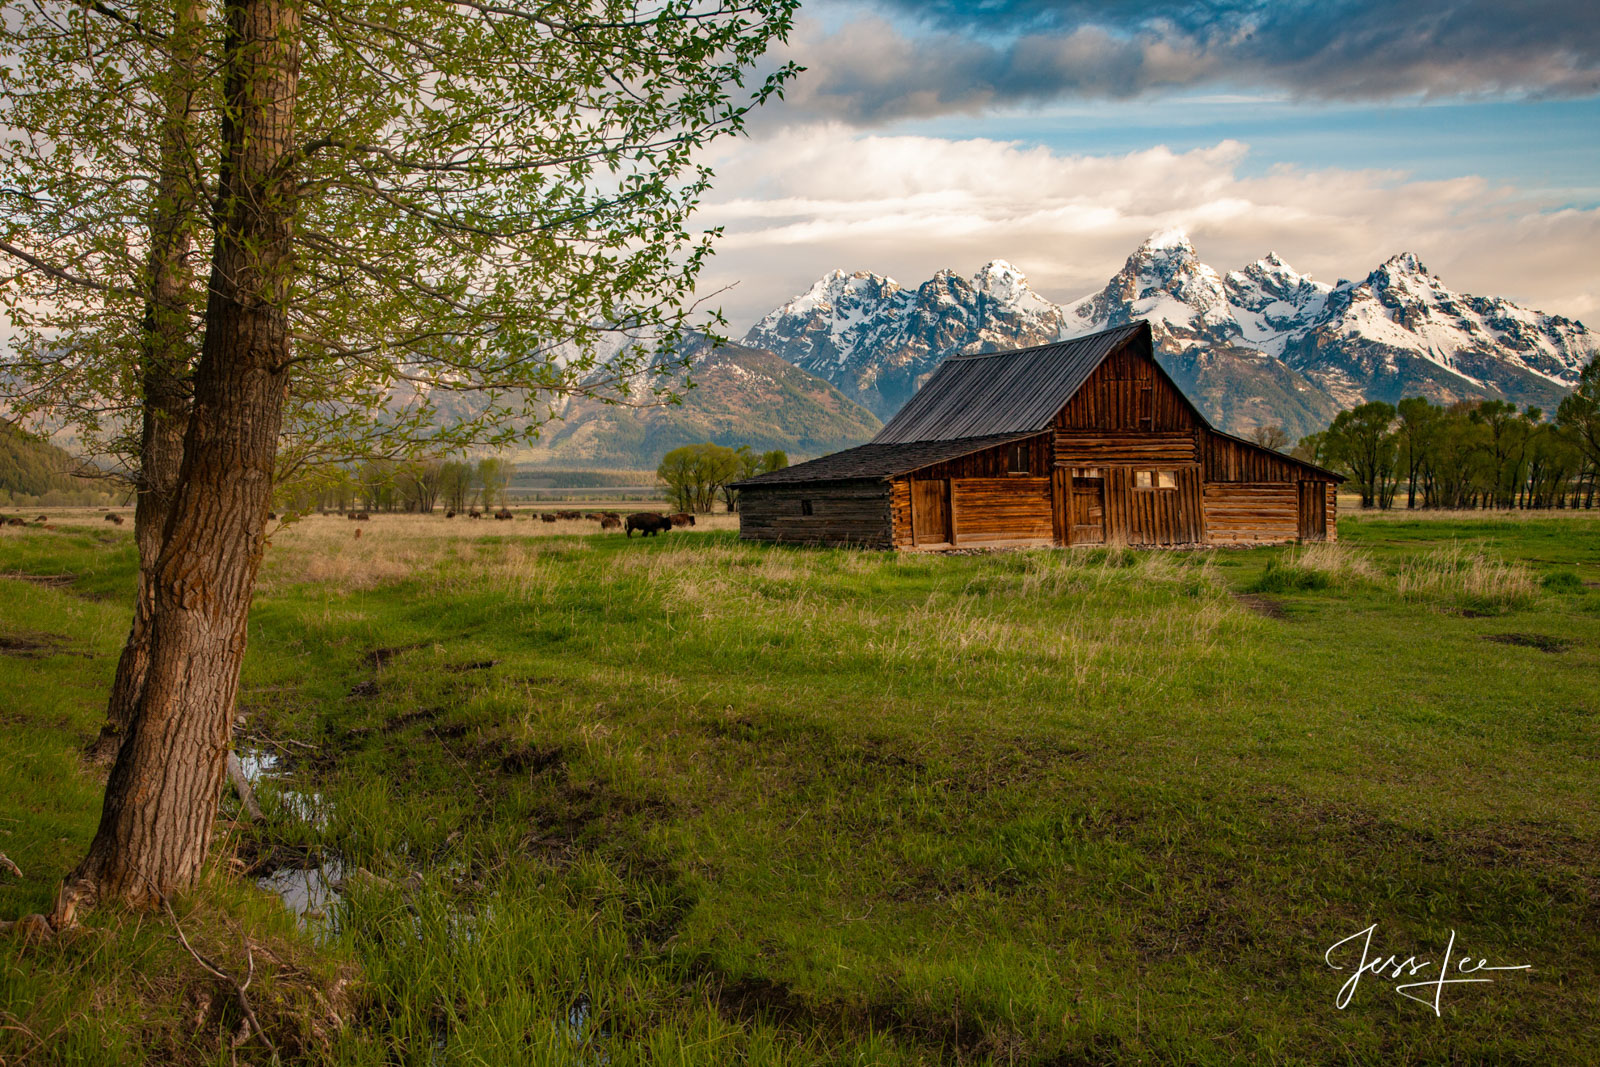 mountain photography, quality, museum, fine art, print, , jess lee, artist, western, cowboy, photographer, limited edition, high quality, high resolution, beautiful, artistic, landscape, rare, landsca, photo